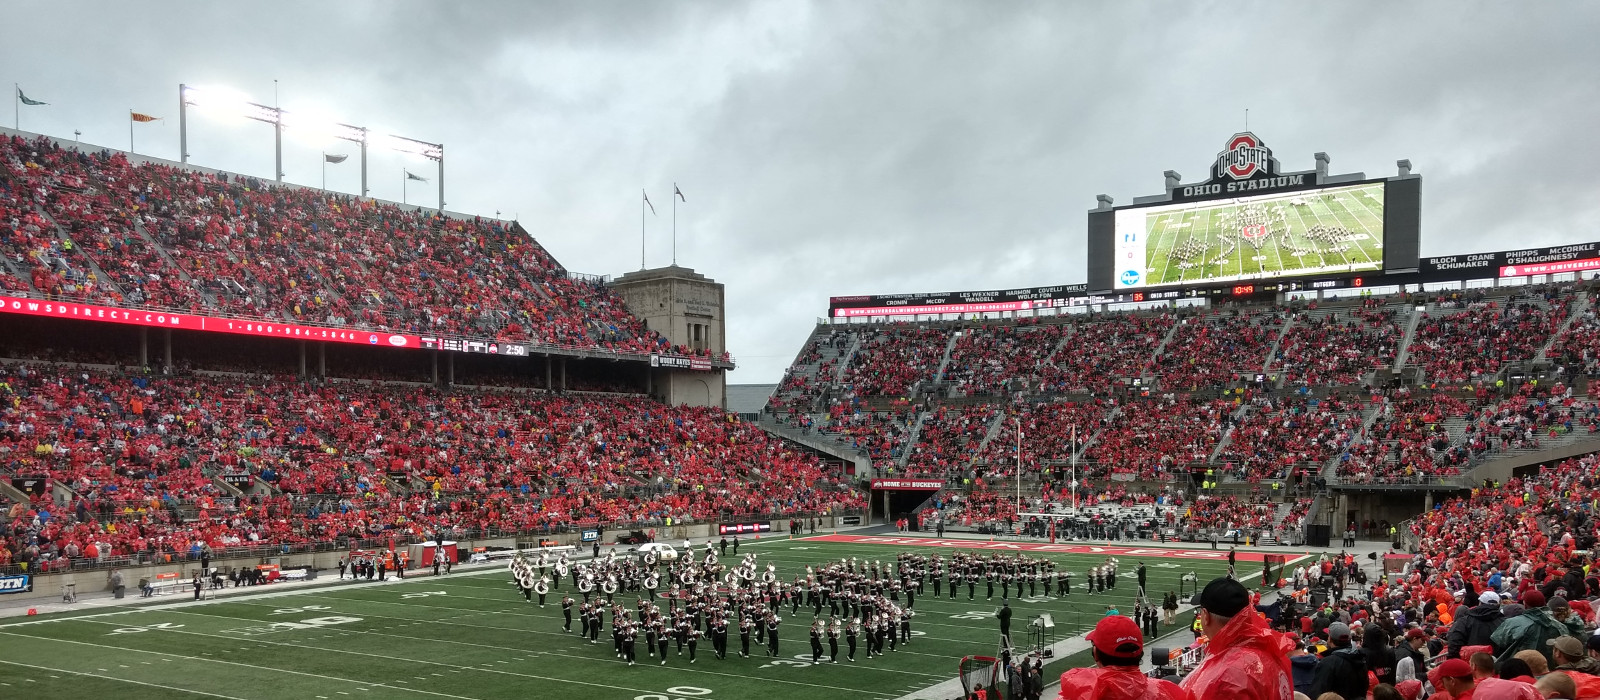 Ohio State marching band in Ohio Stadium